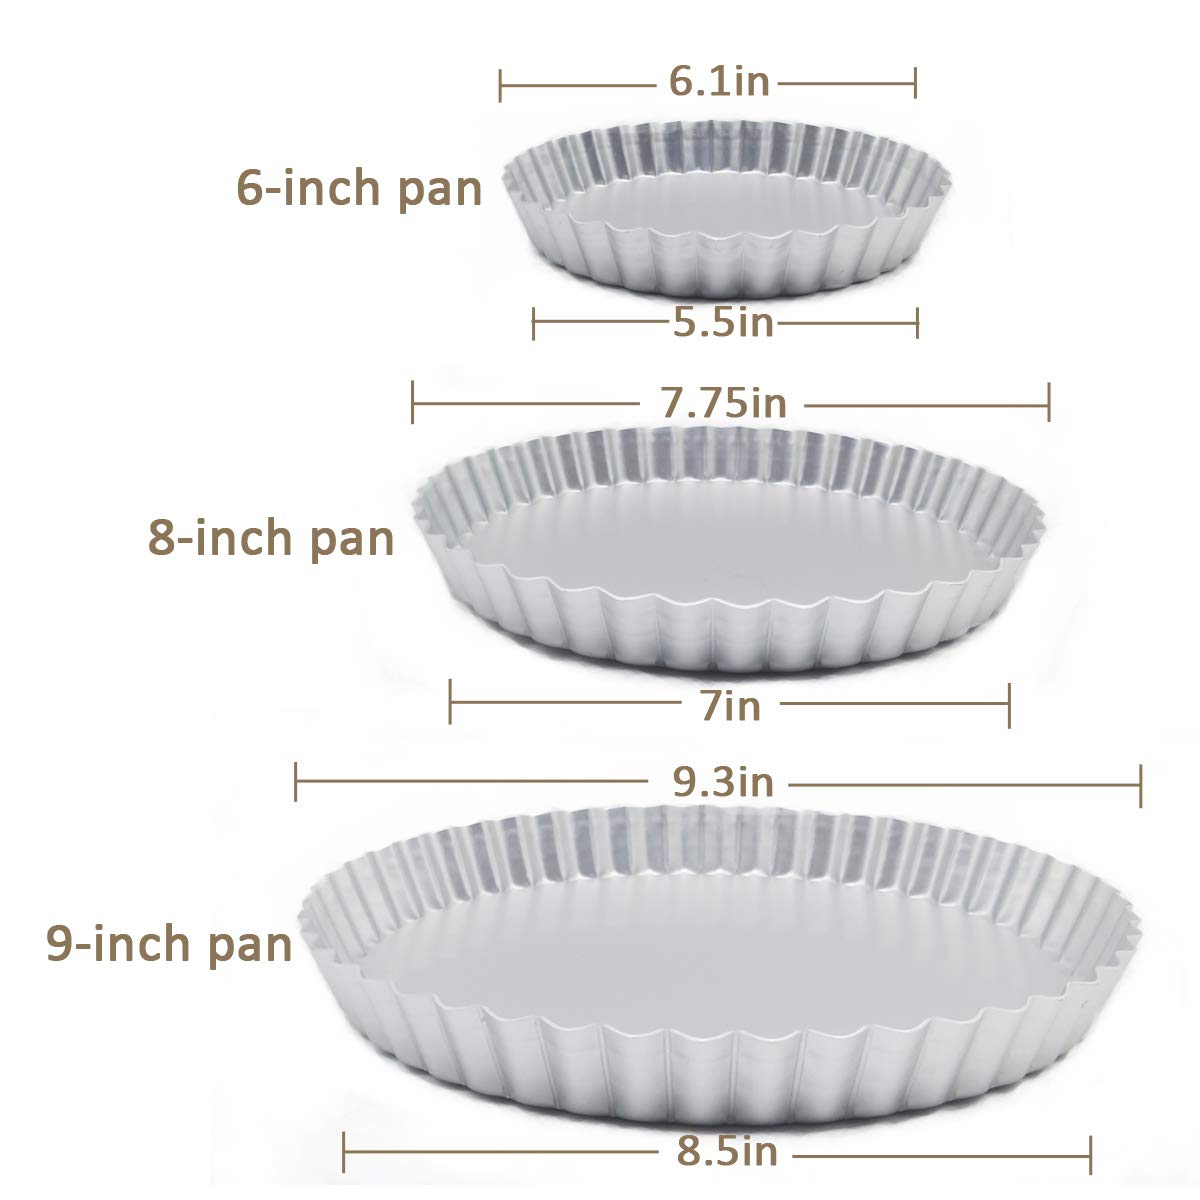 3 Pack(6, 8, 9 Inch) Tart Pan and Quiche Pan, Non-Stick Pan with Removable Base Bottom (Silver Color) by Brightalk (Image #2)